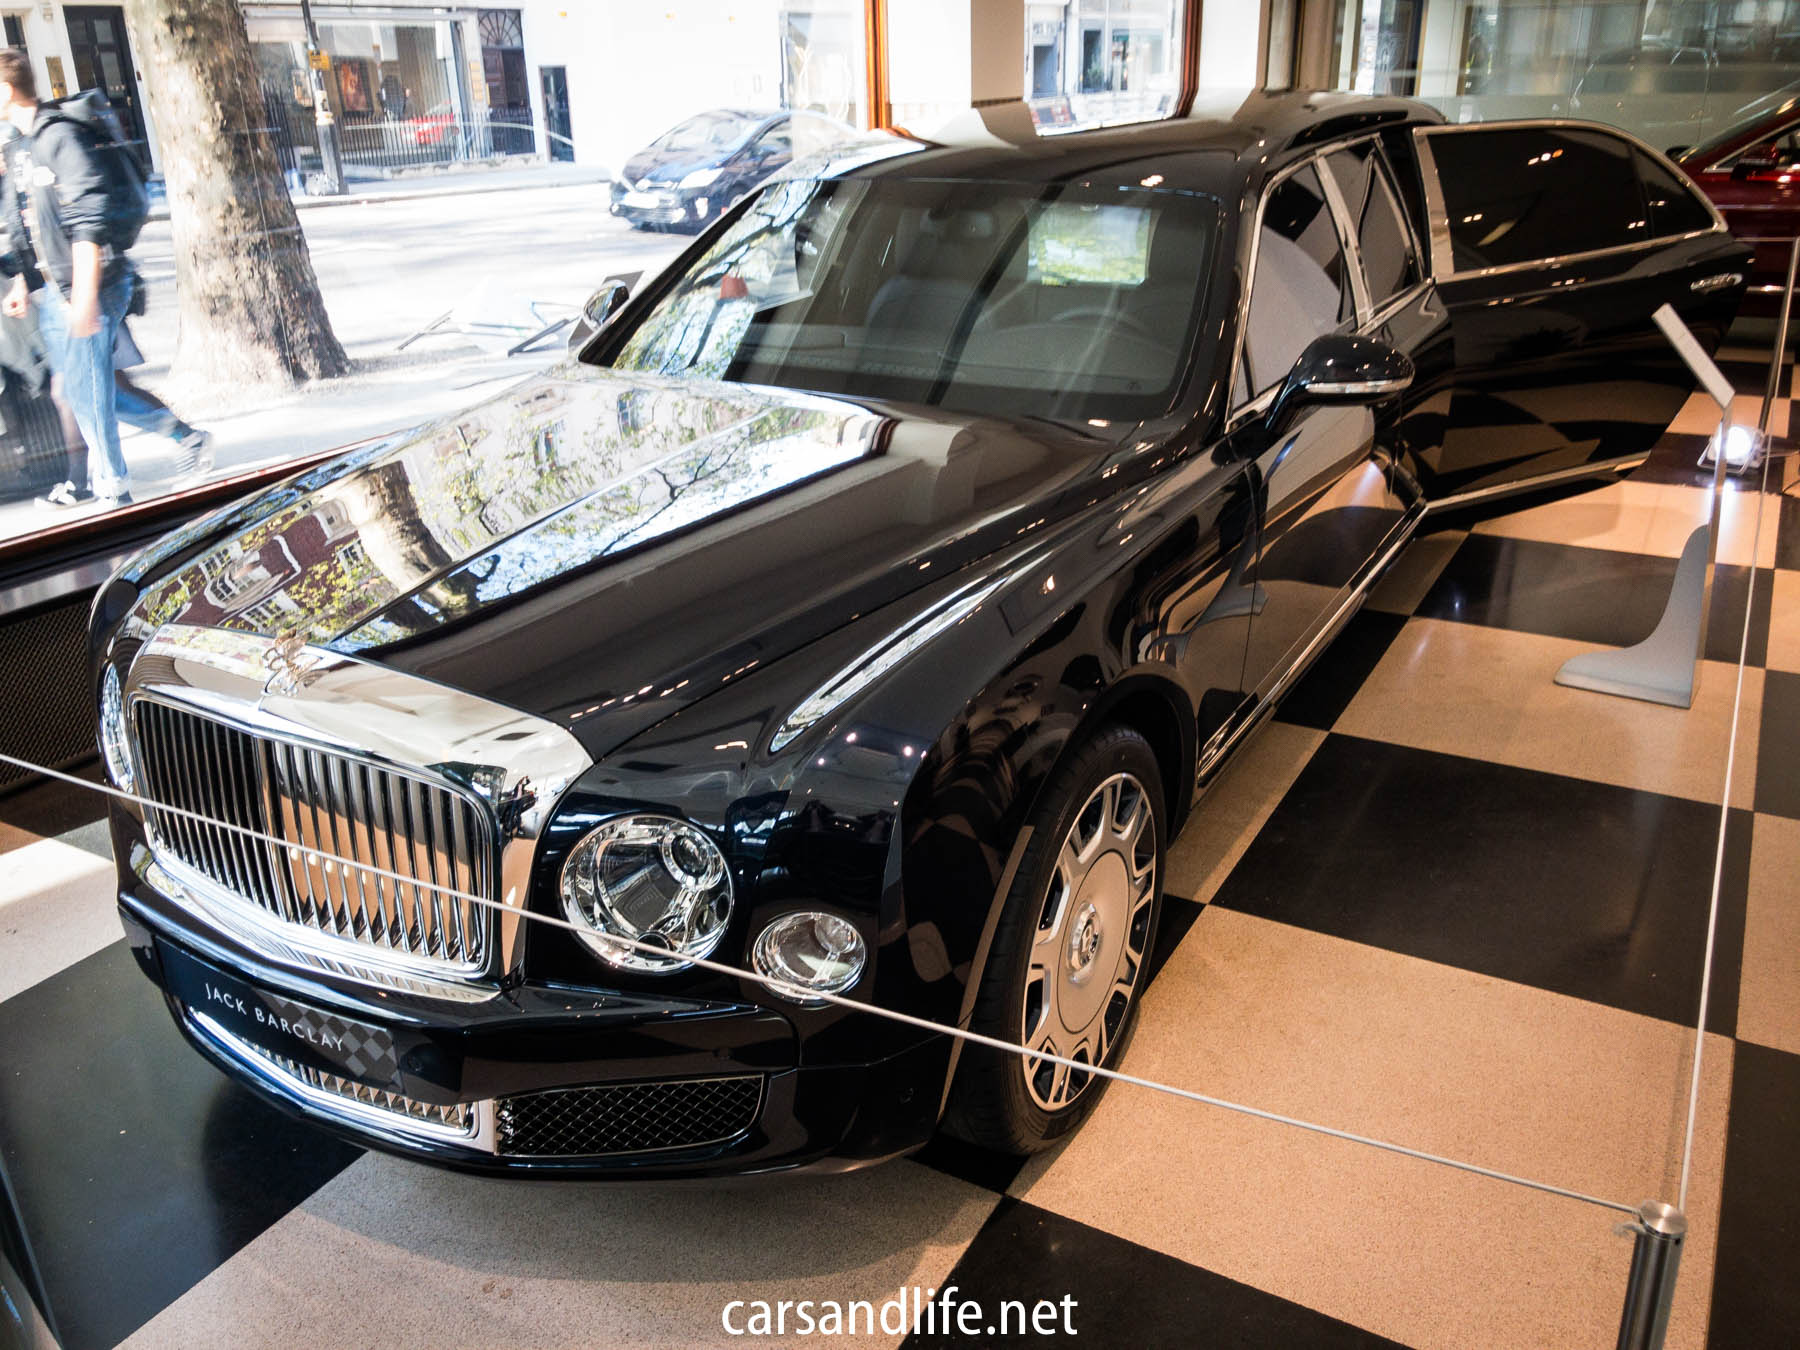 bentley cars state limous limousine top speed